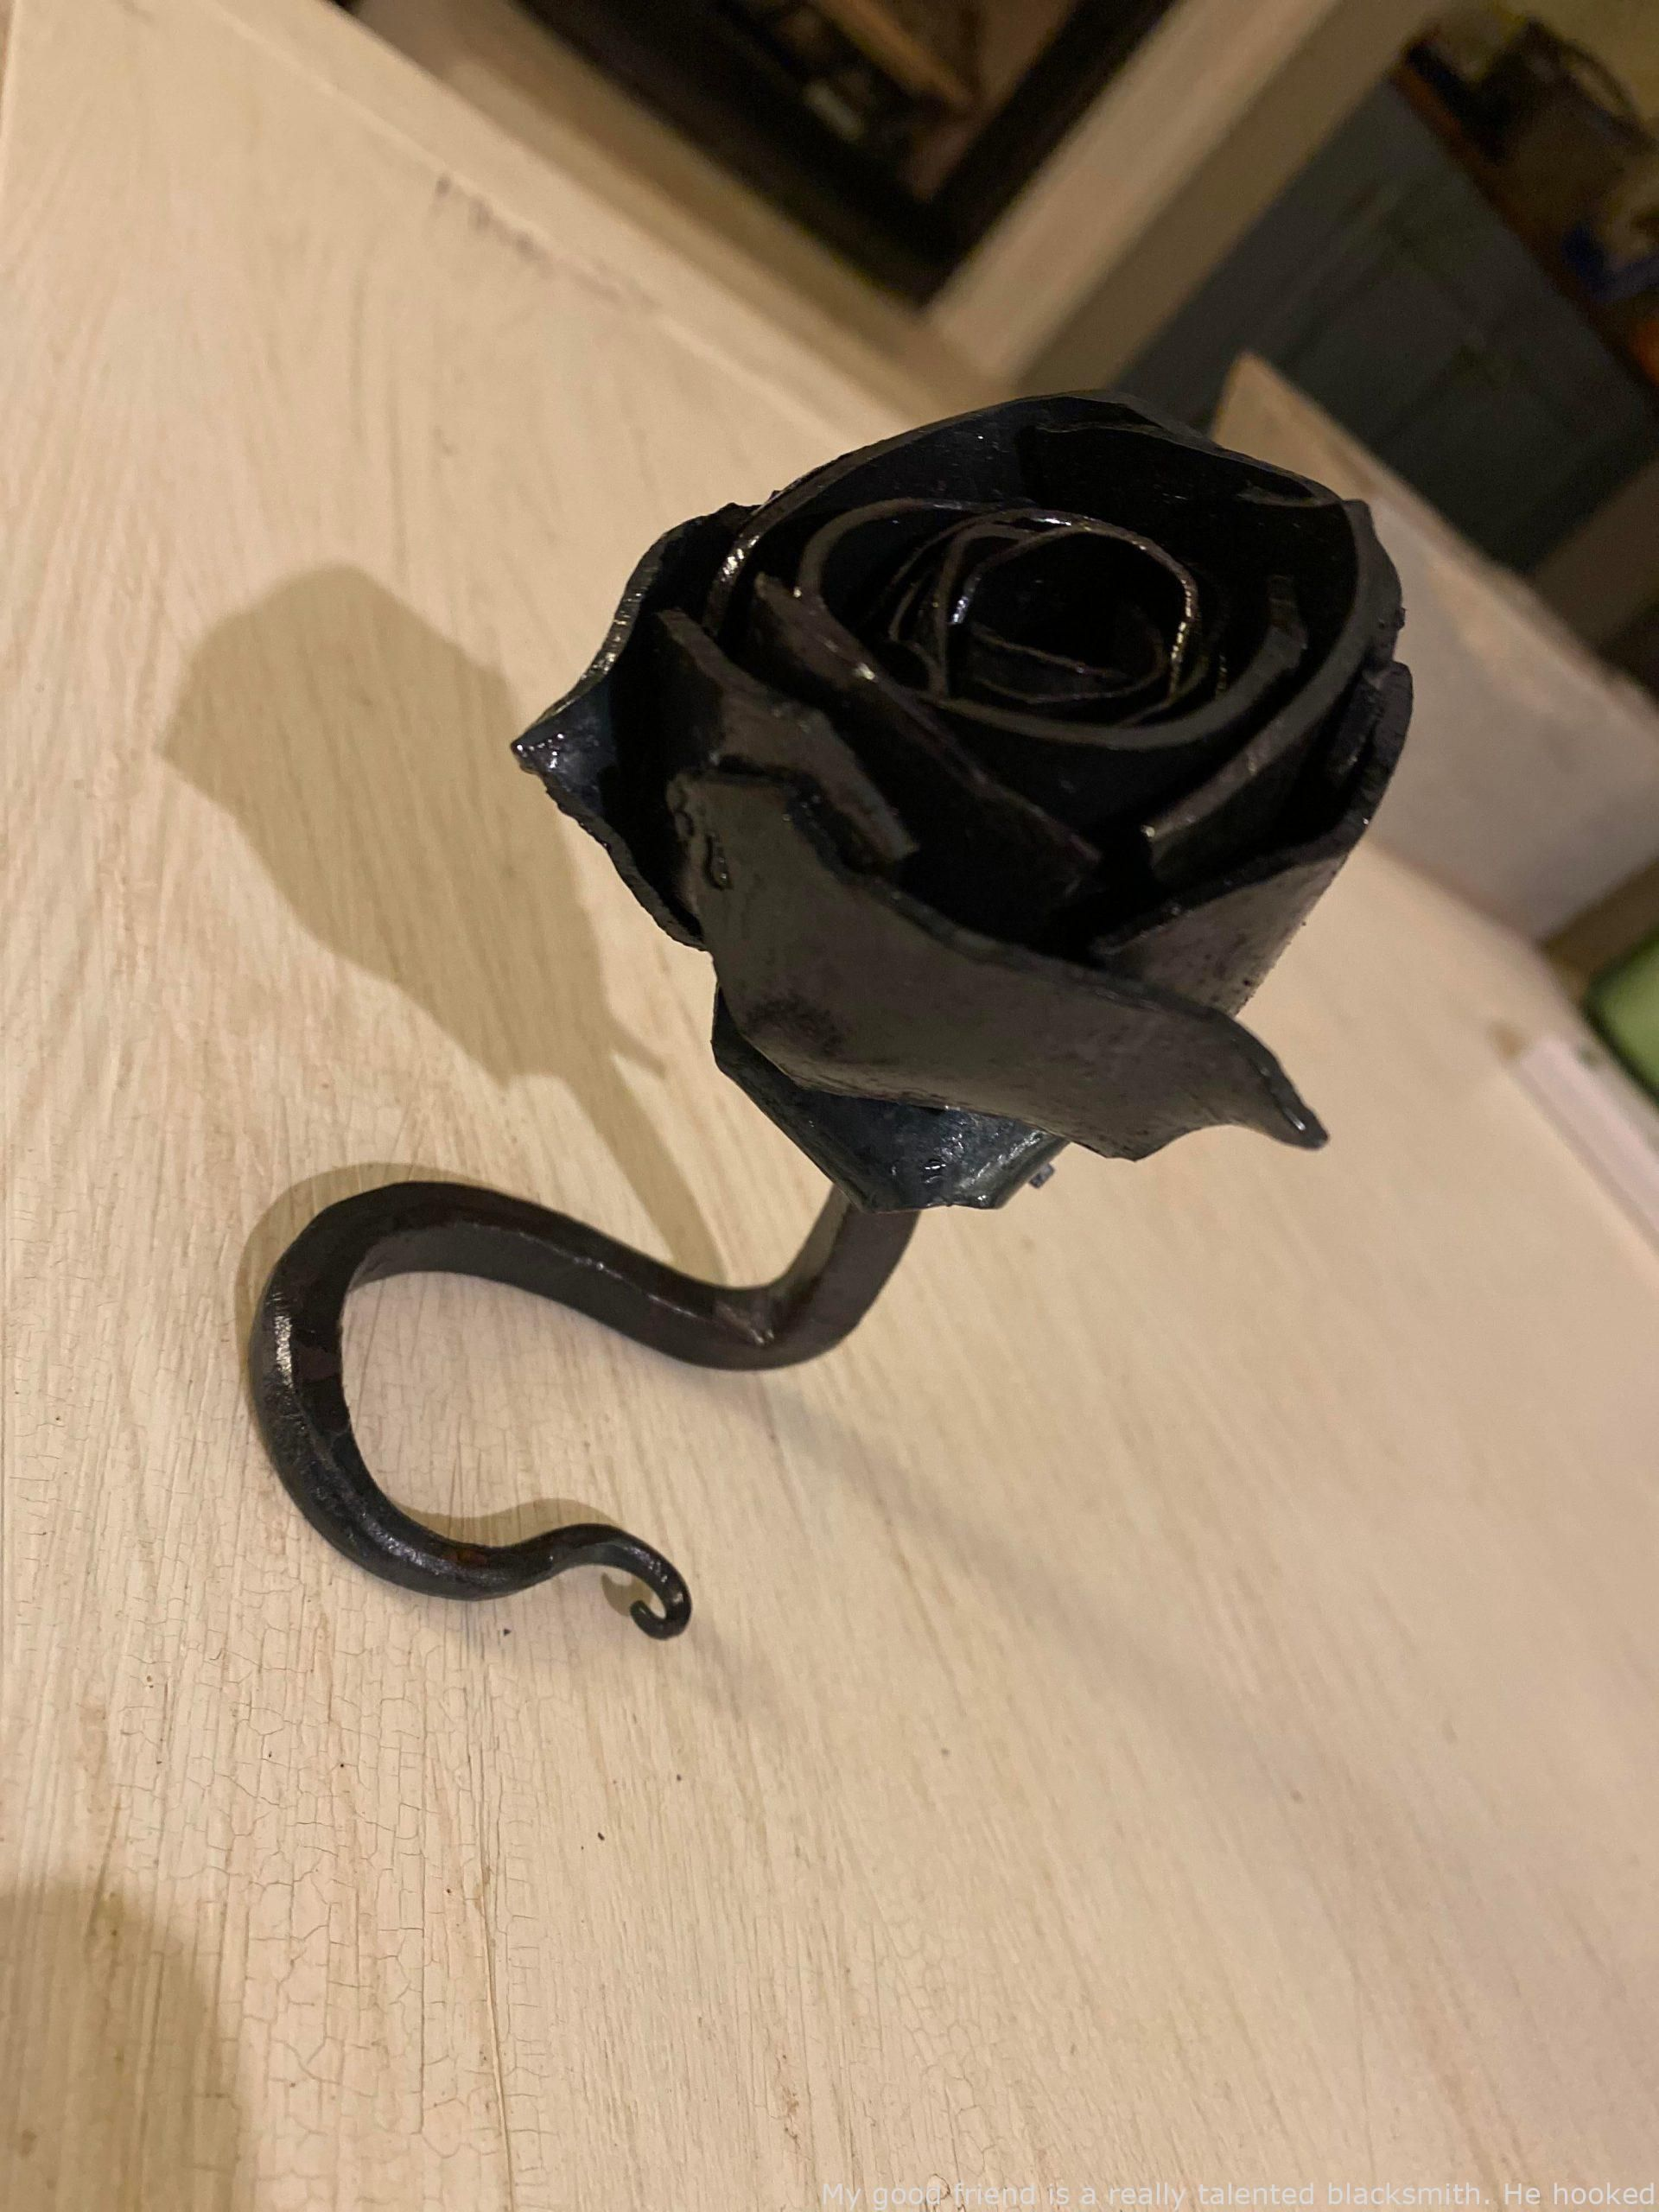 Amazing My Buddy Is A Really Talented Blacksmith He Hooked Me Up To Get My Woman A Valentines Day Existi In 2020 Valentines Day Presents Valentines My Best Friend